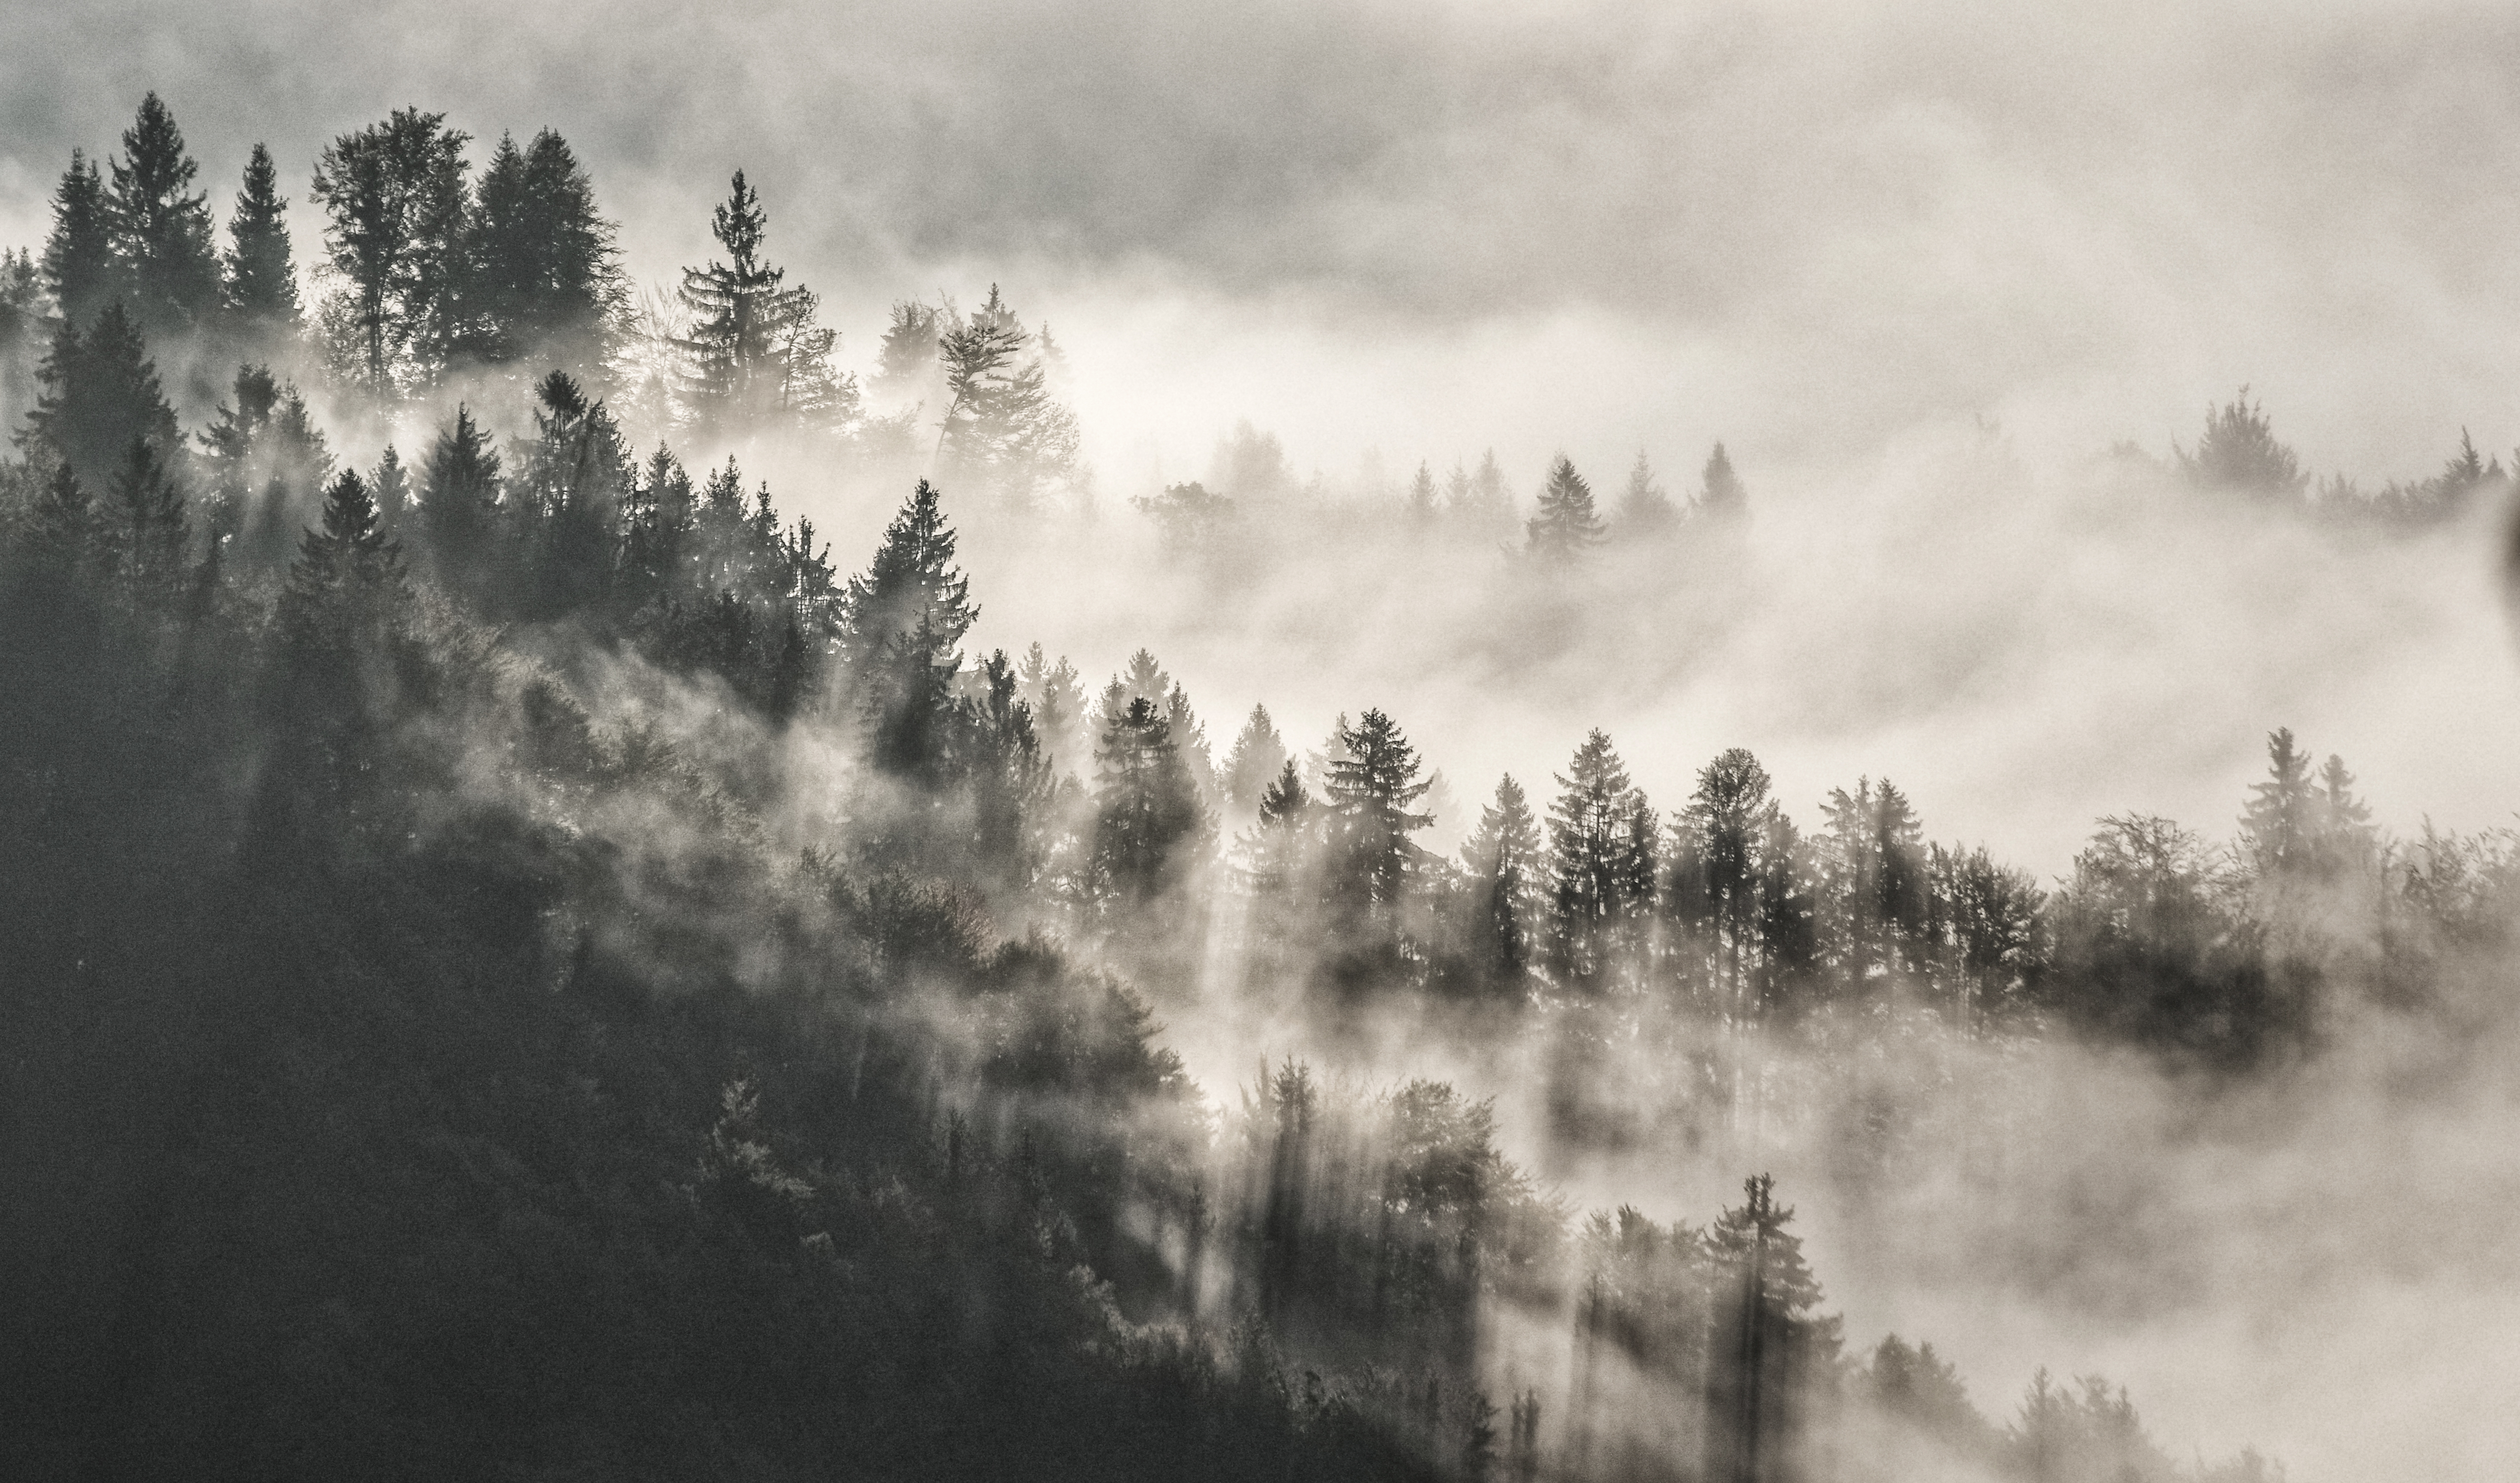 mist winter trees in mountains 1574937876 - Mist Winter Trees In Mountains -